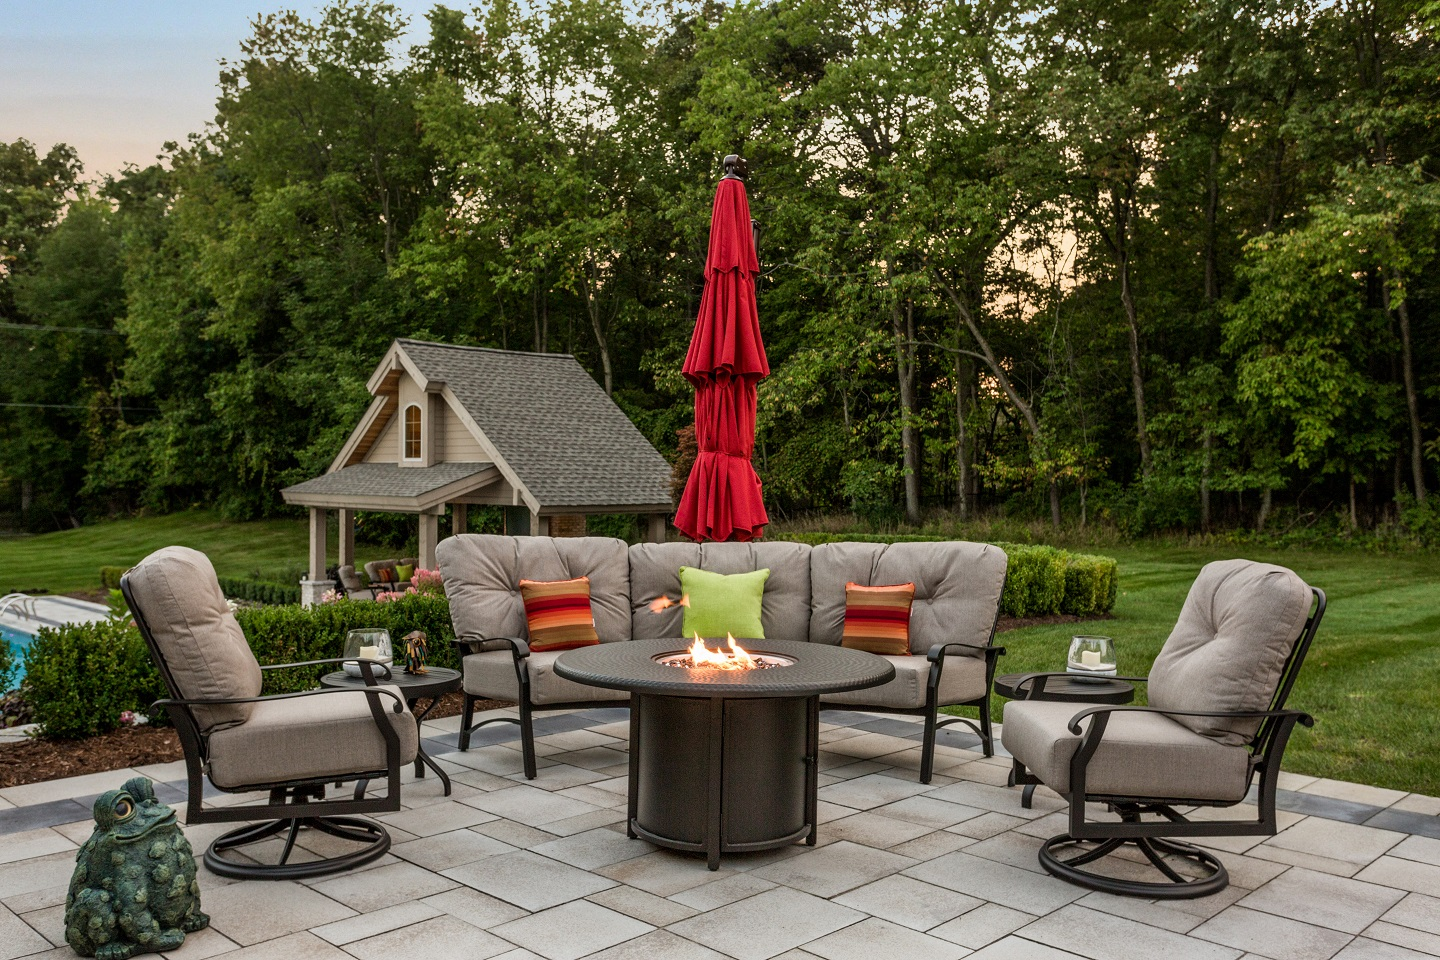 Top outdoor fireplace in SE Michigan